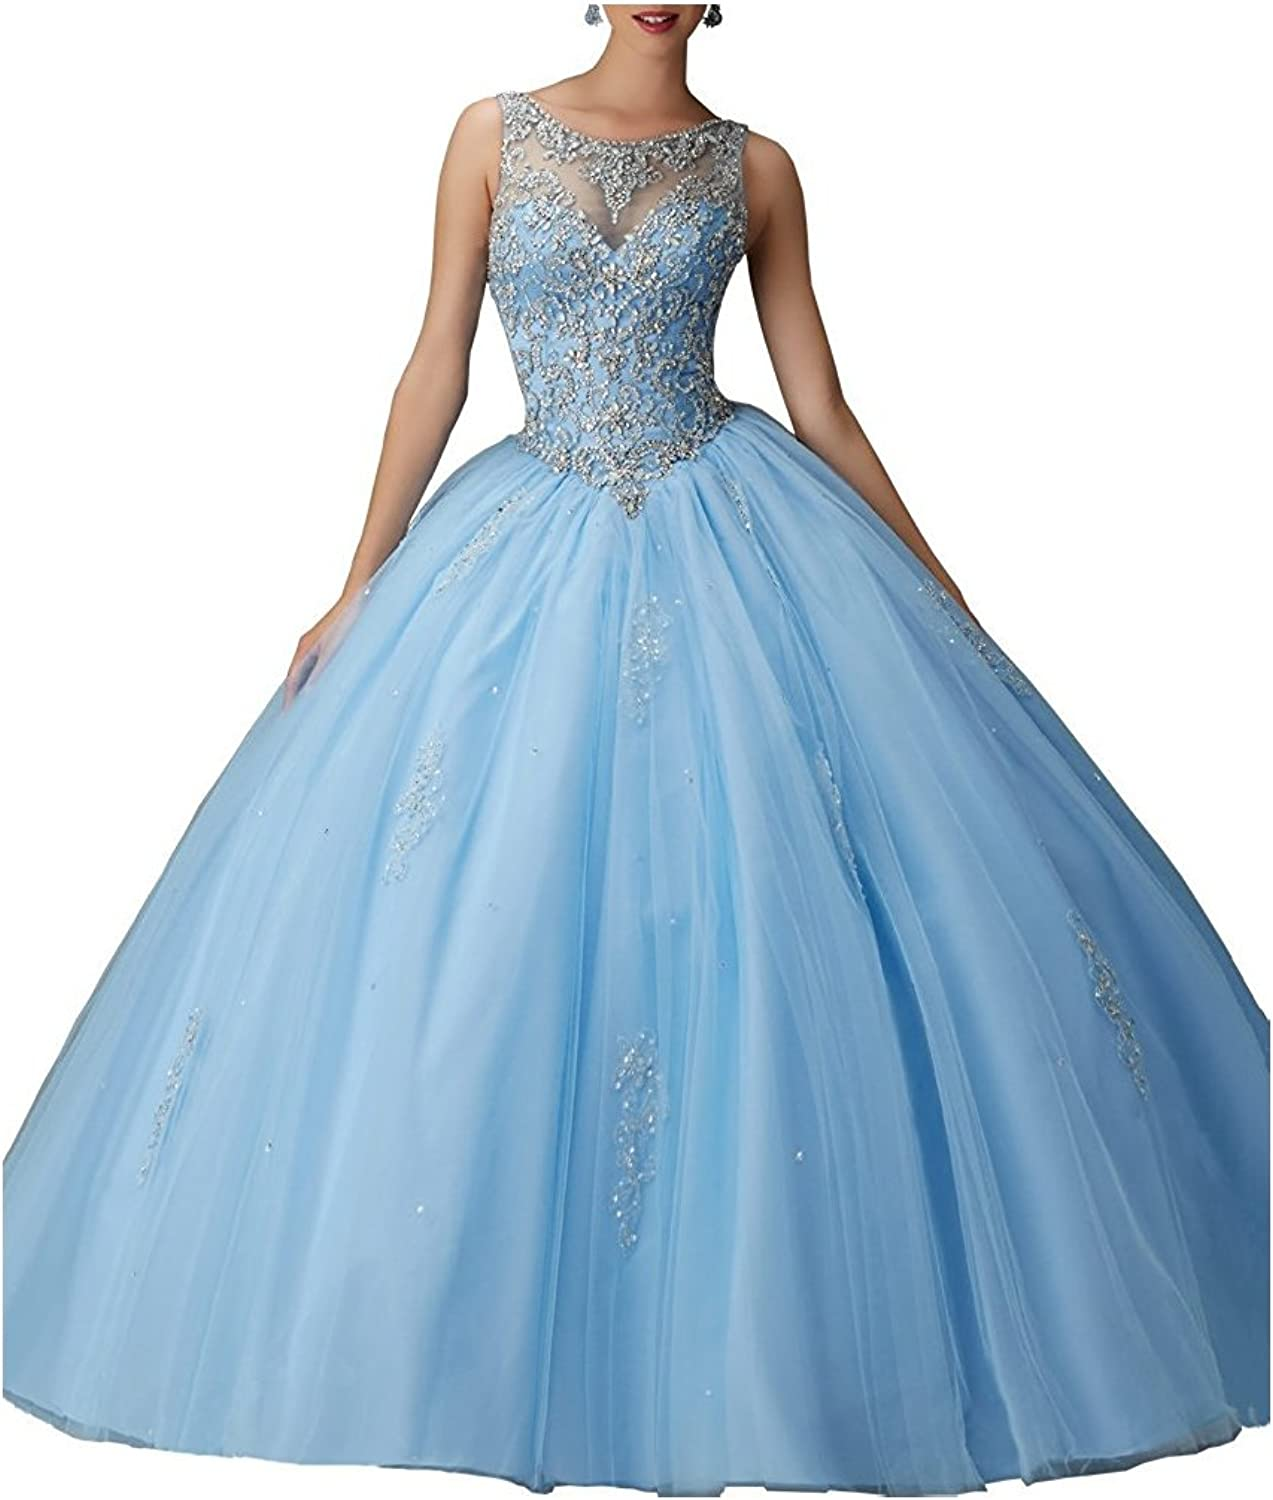 Kewl Fashion Women's Sweetheart Ball Gown Beads Prom Quinceanera Dress 2017